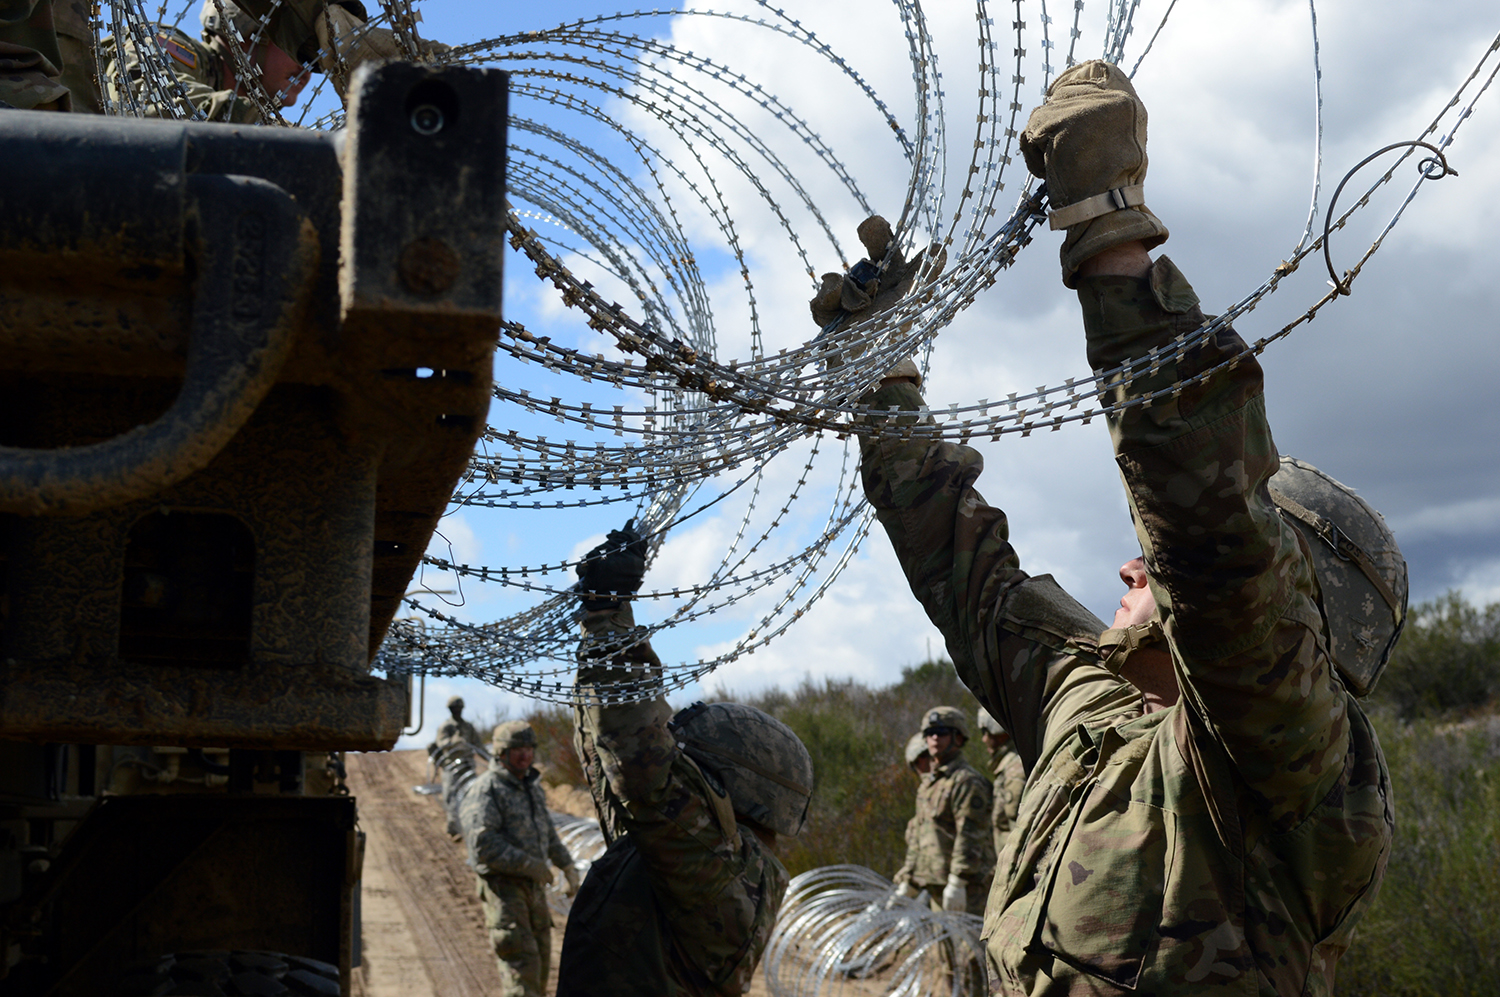 Soldiers emplace strands of concertina wire along the border fence on March 8, 2019, near Campo, Calif. (Sgt. 1st Class Ben K. Navratil/Army)